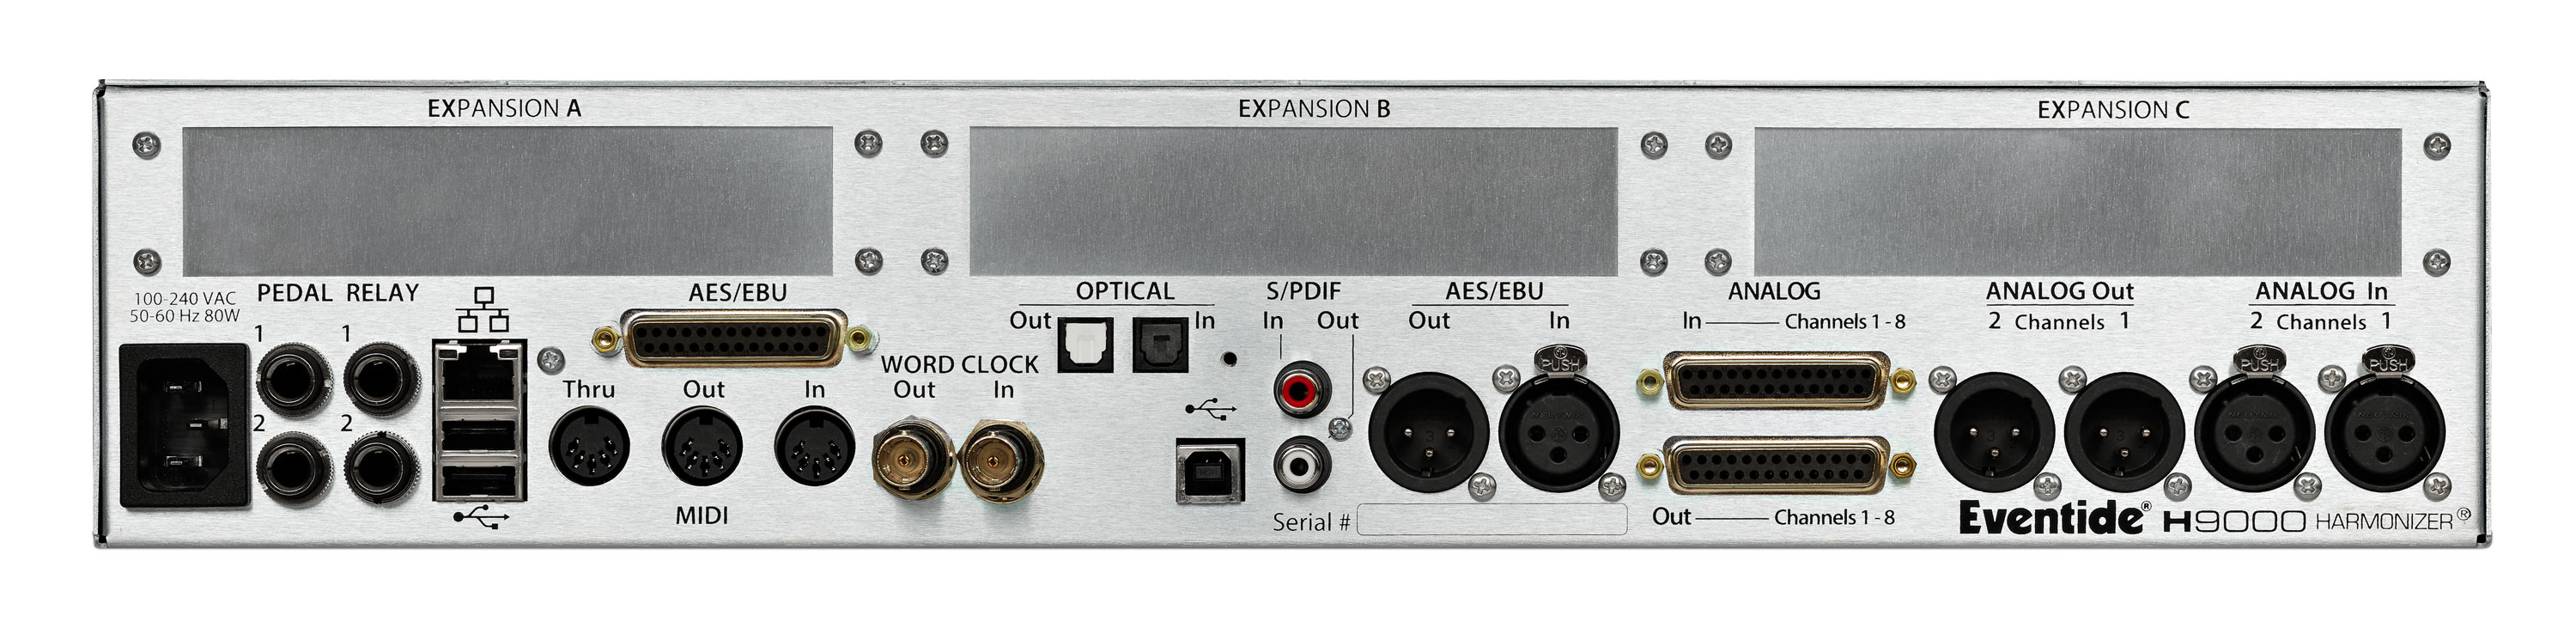 Eventide H9000 Harmonizer Rear Panel connections